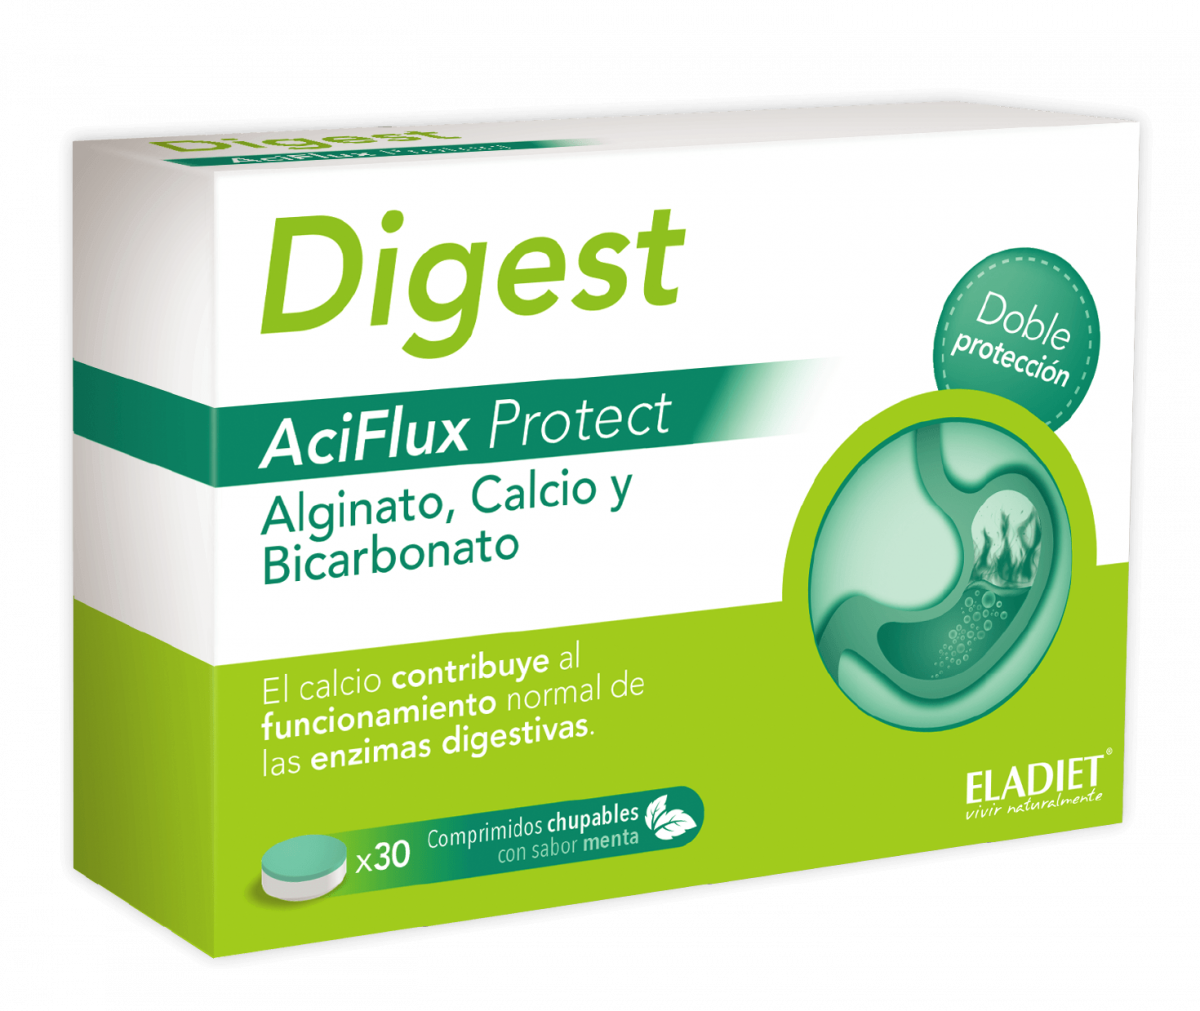 Digest Aciflux Protect